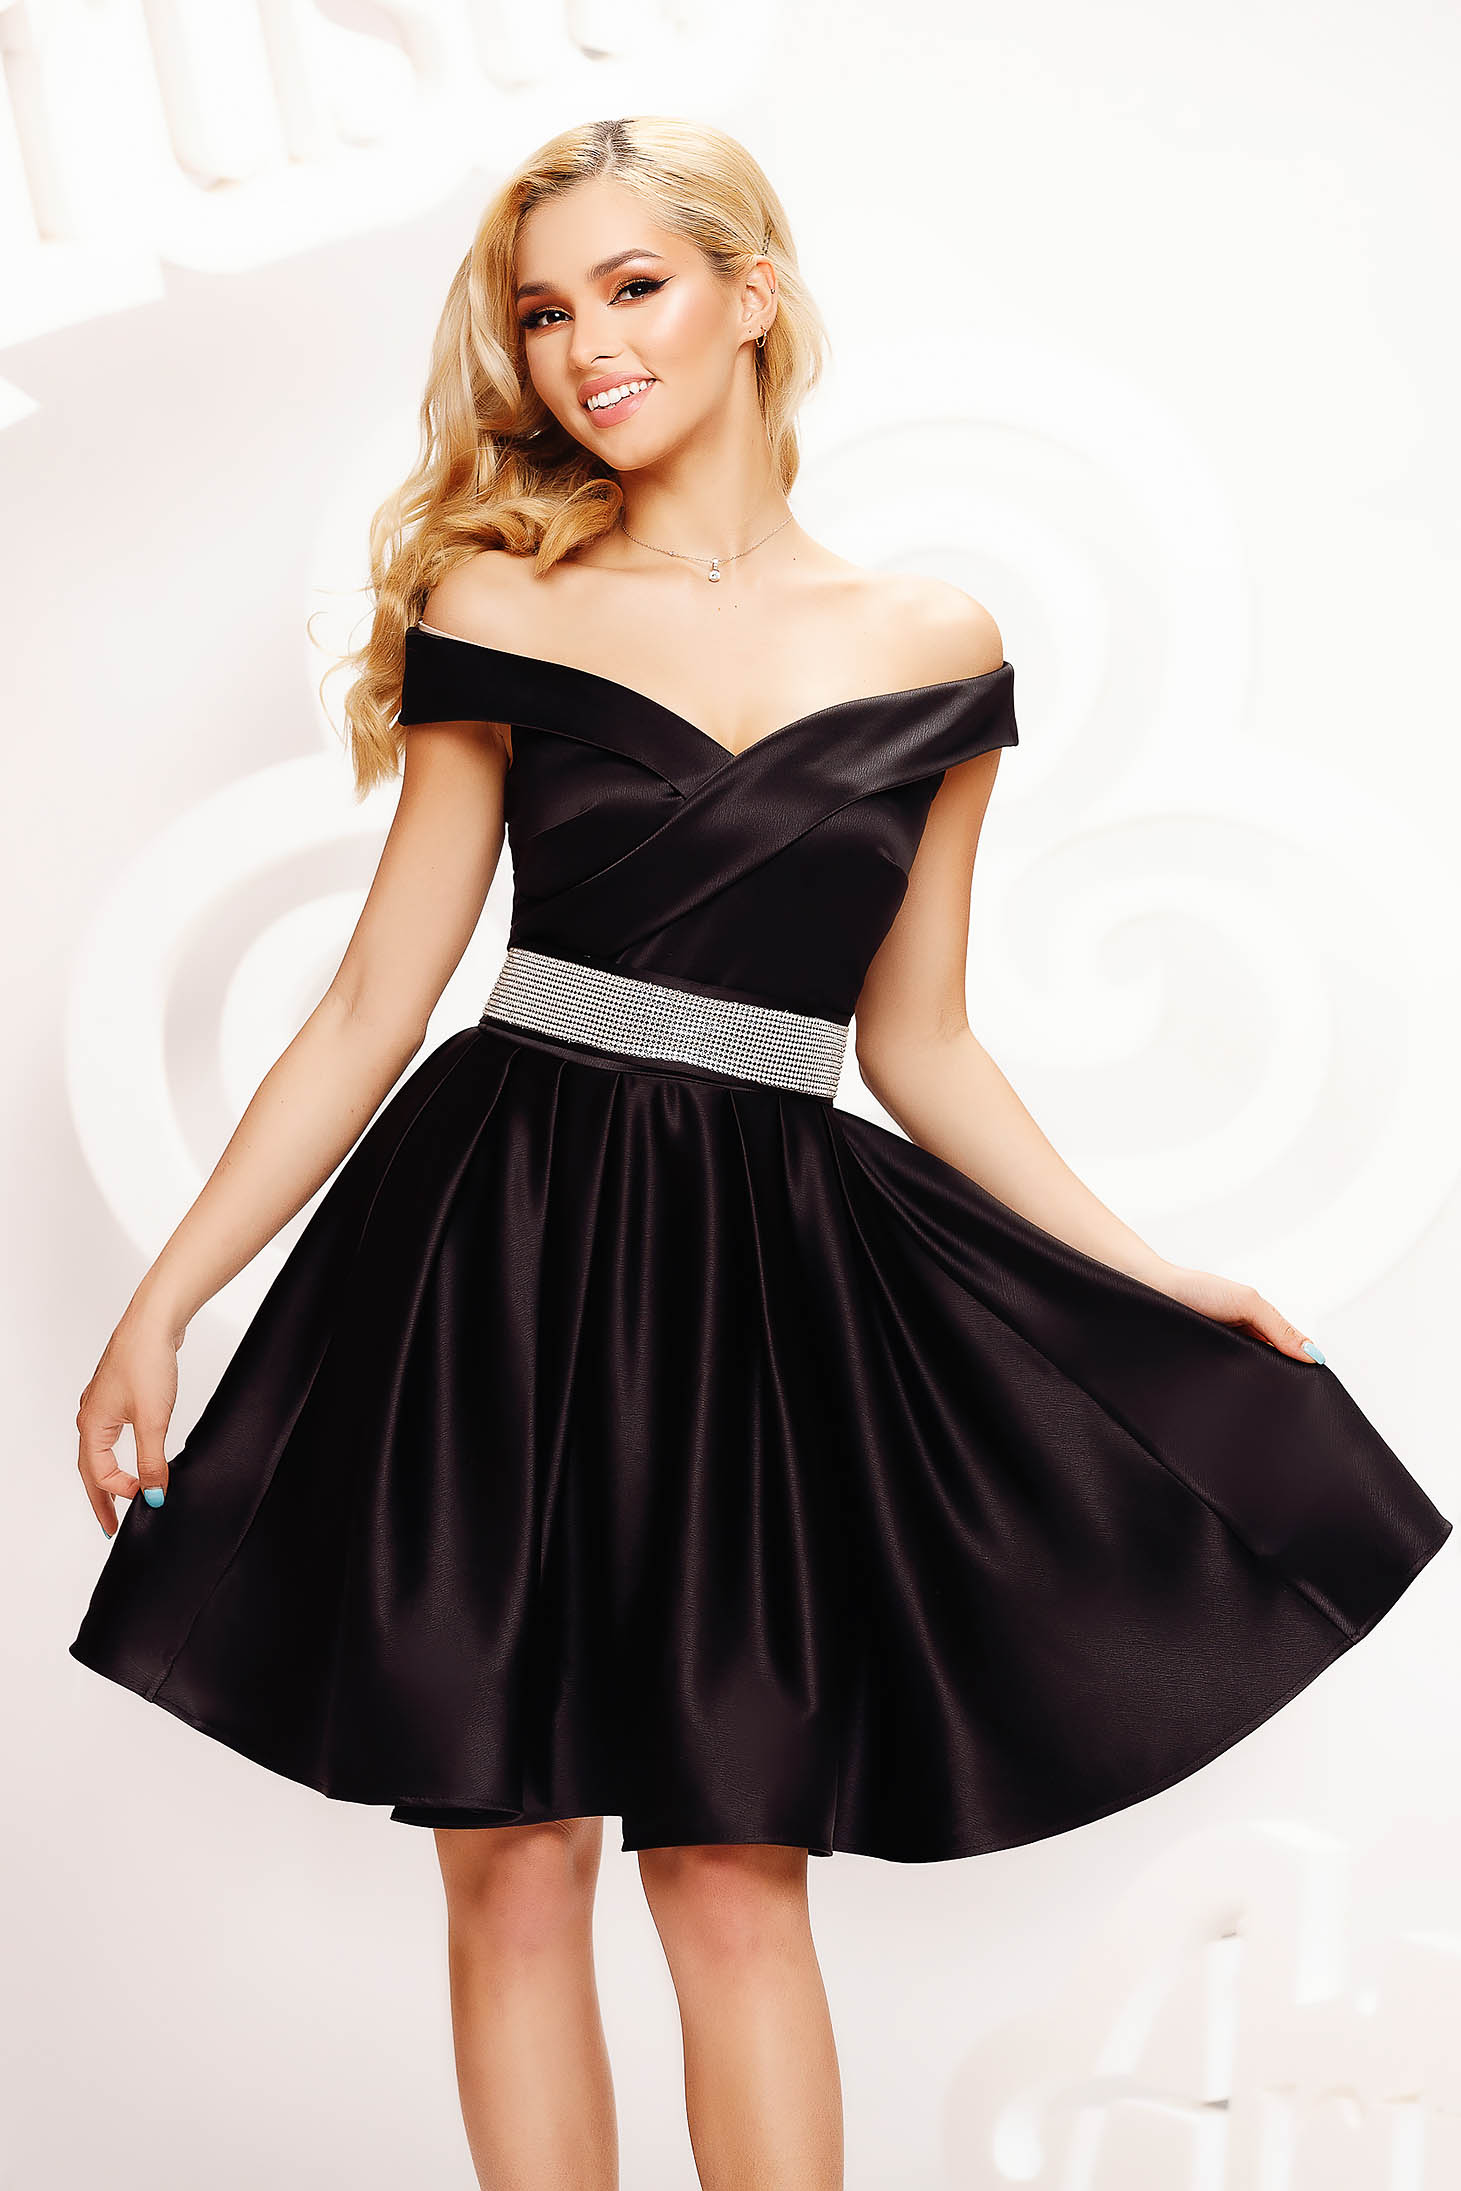 Black dress from satin cloche occasional accessorized with a waistband on the shoulders